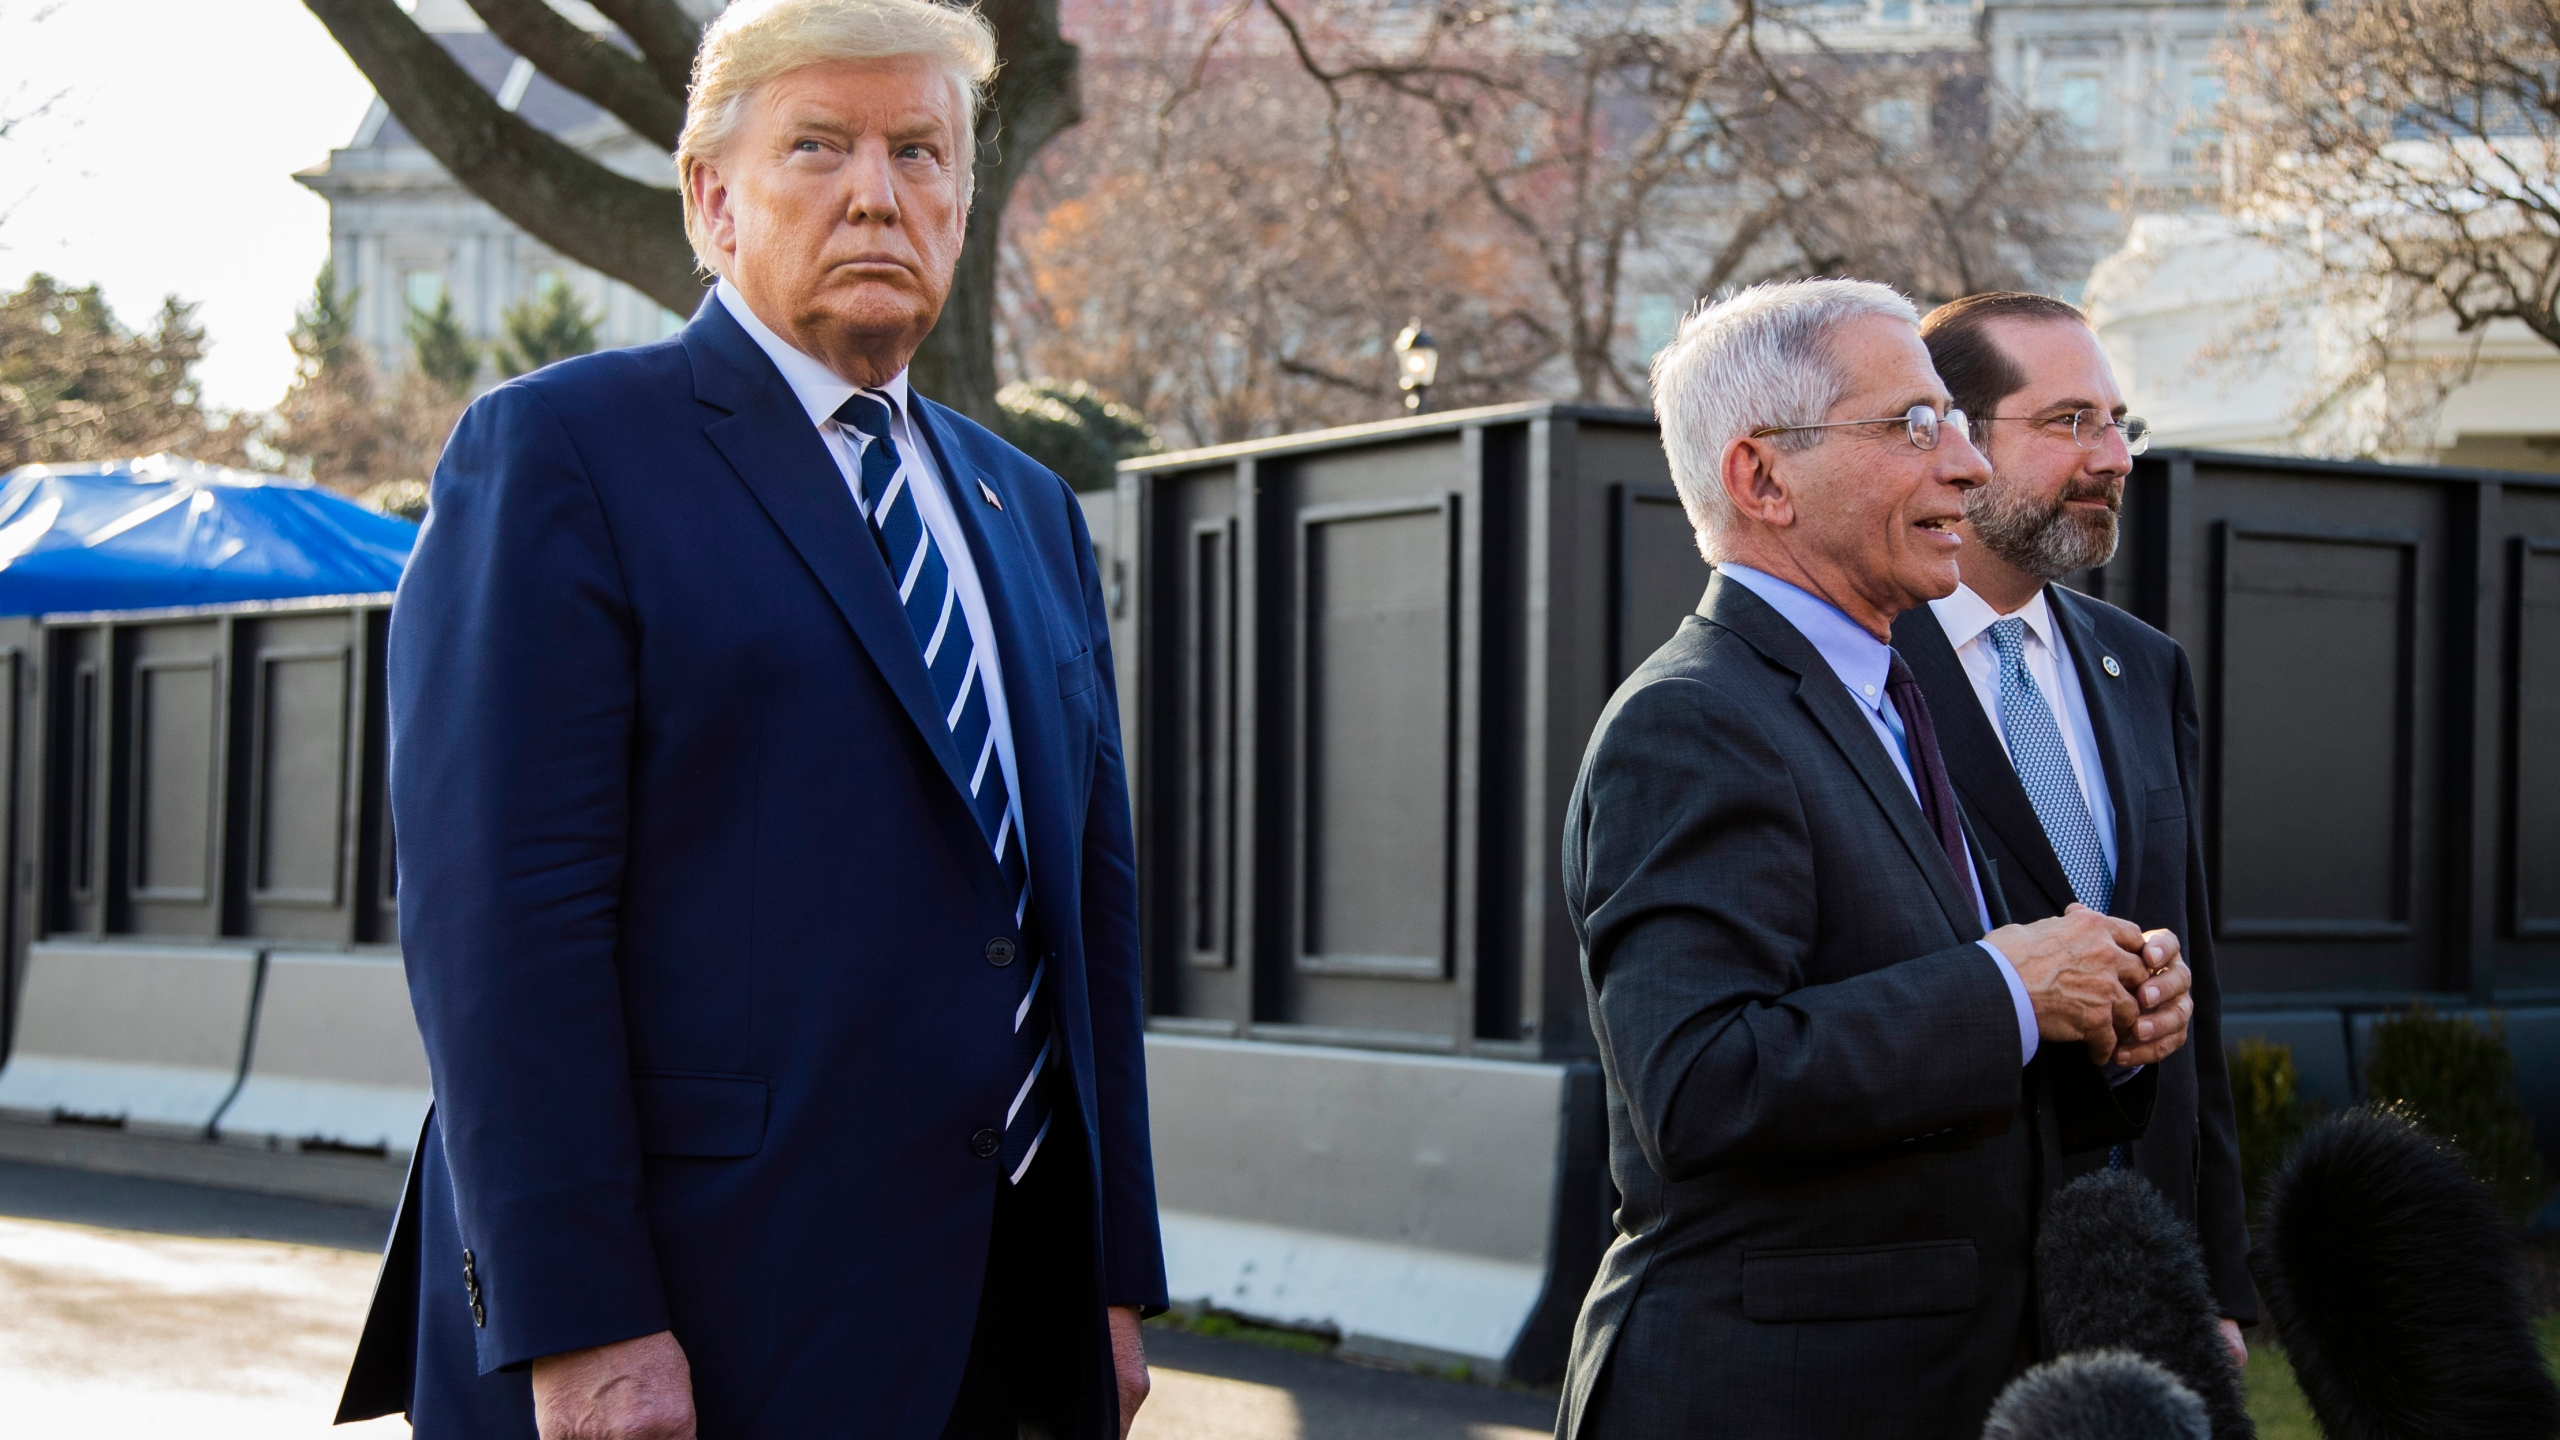 Donald Trump, Alex Azar, Anthony Fauci